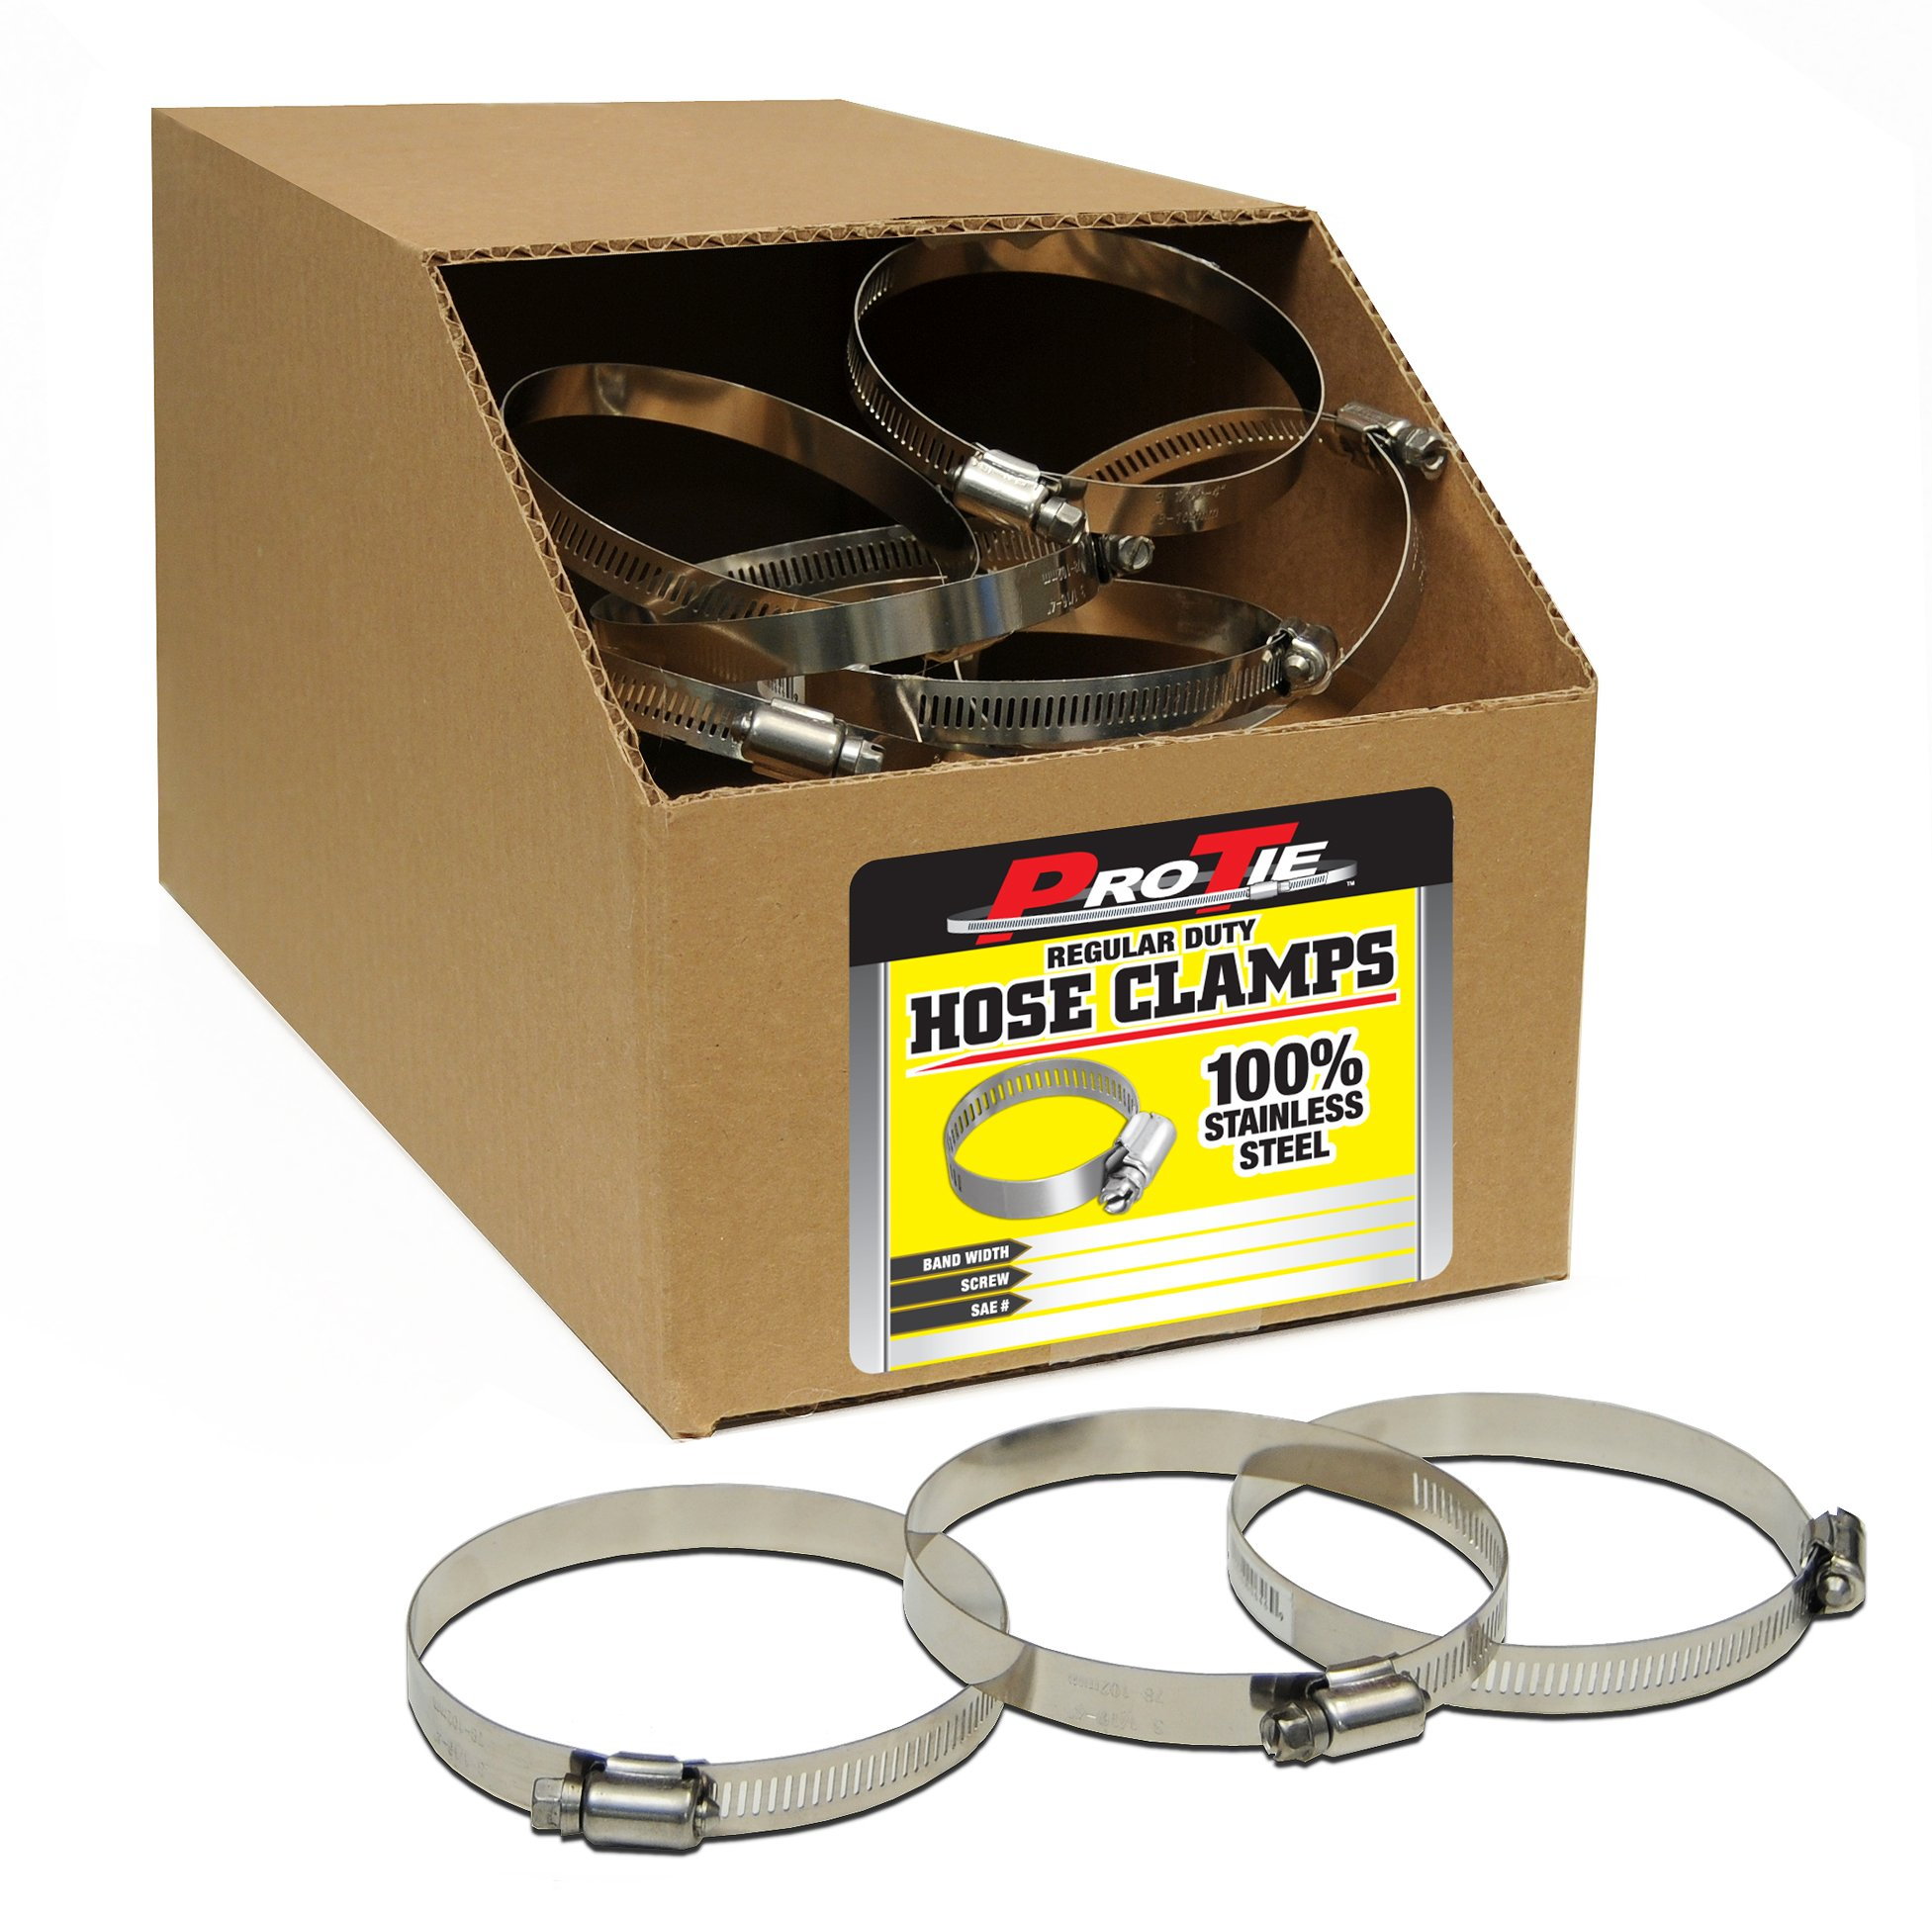 Pro Tie 33841 Regular Duty All Stainless Bulk Hose Clamps, SAE Size 104, Range 6-1/16-Inch-7-Inch, Box of 80 by Pro Tie (Image #1)